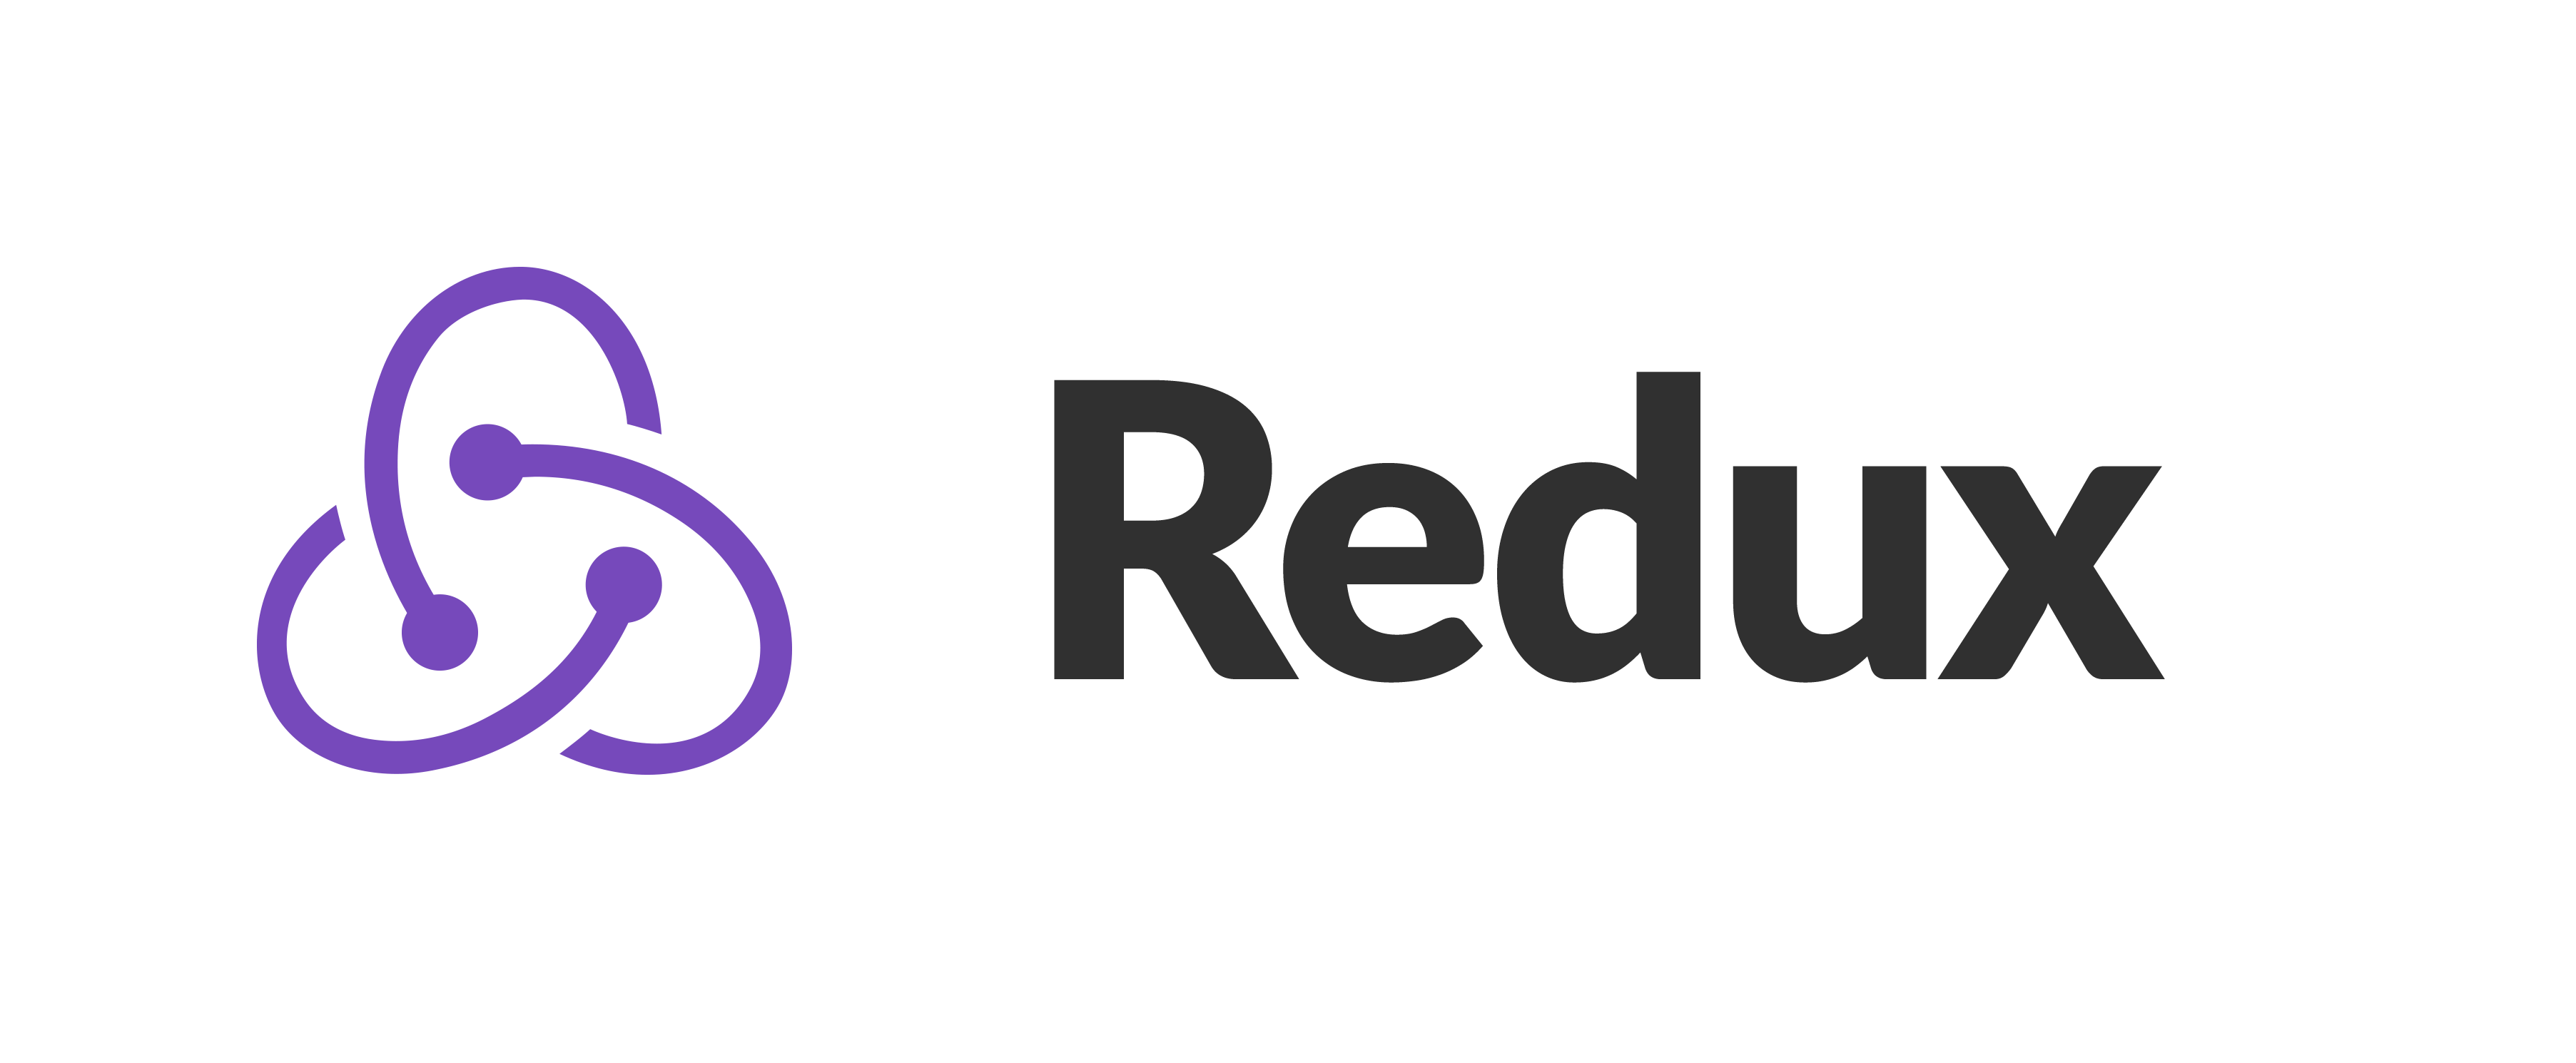 redux architecture for android apps